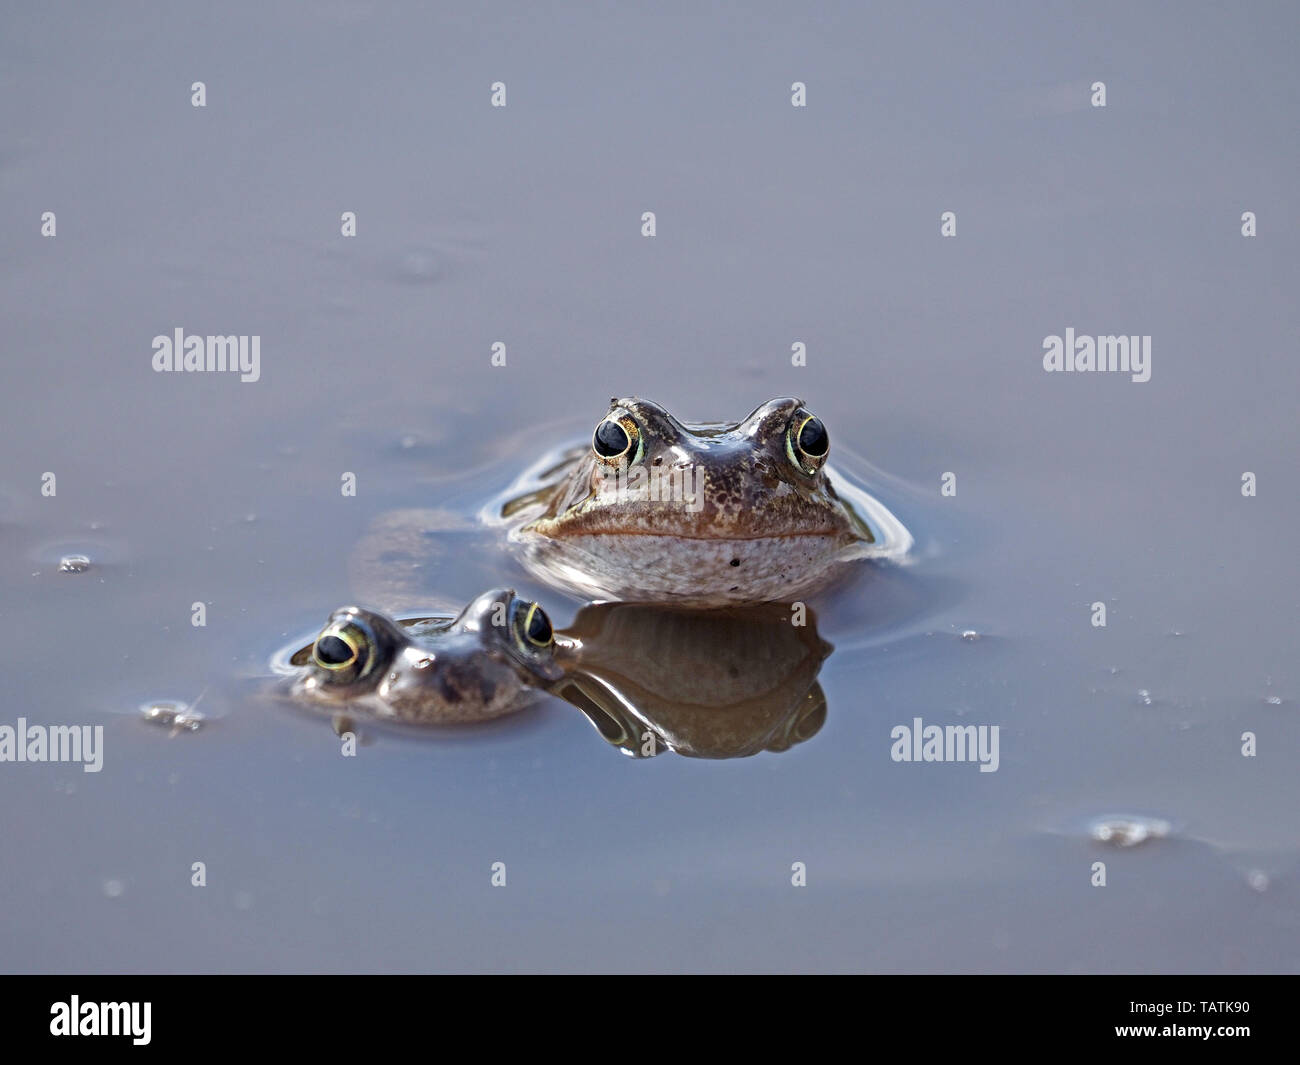 two European common frogs (Rana temporaria) with reflection in muddy upland breeding pool in Cumbria, England, UK - Stock Image